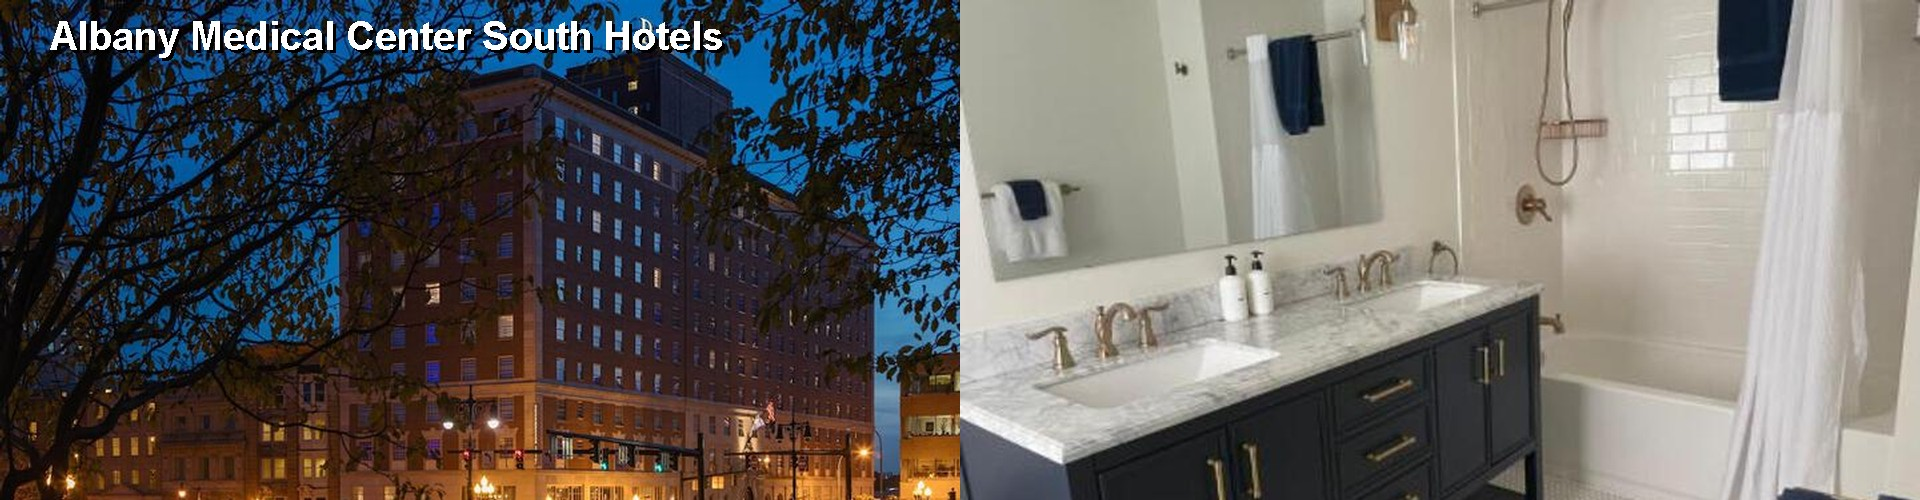 5 Best Hotels near Albany Medical Center South